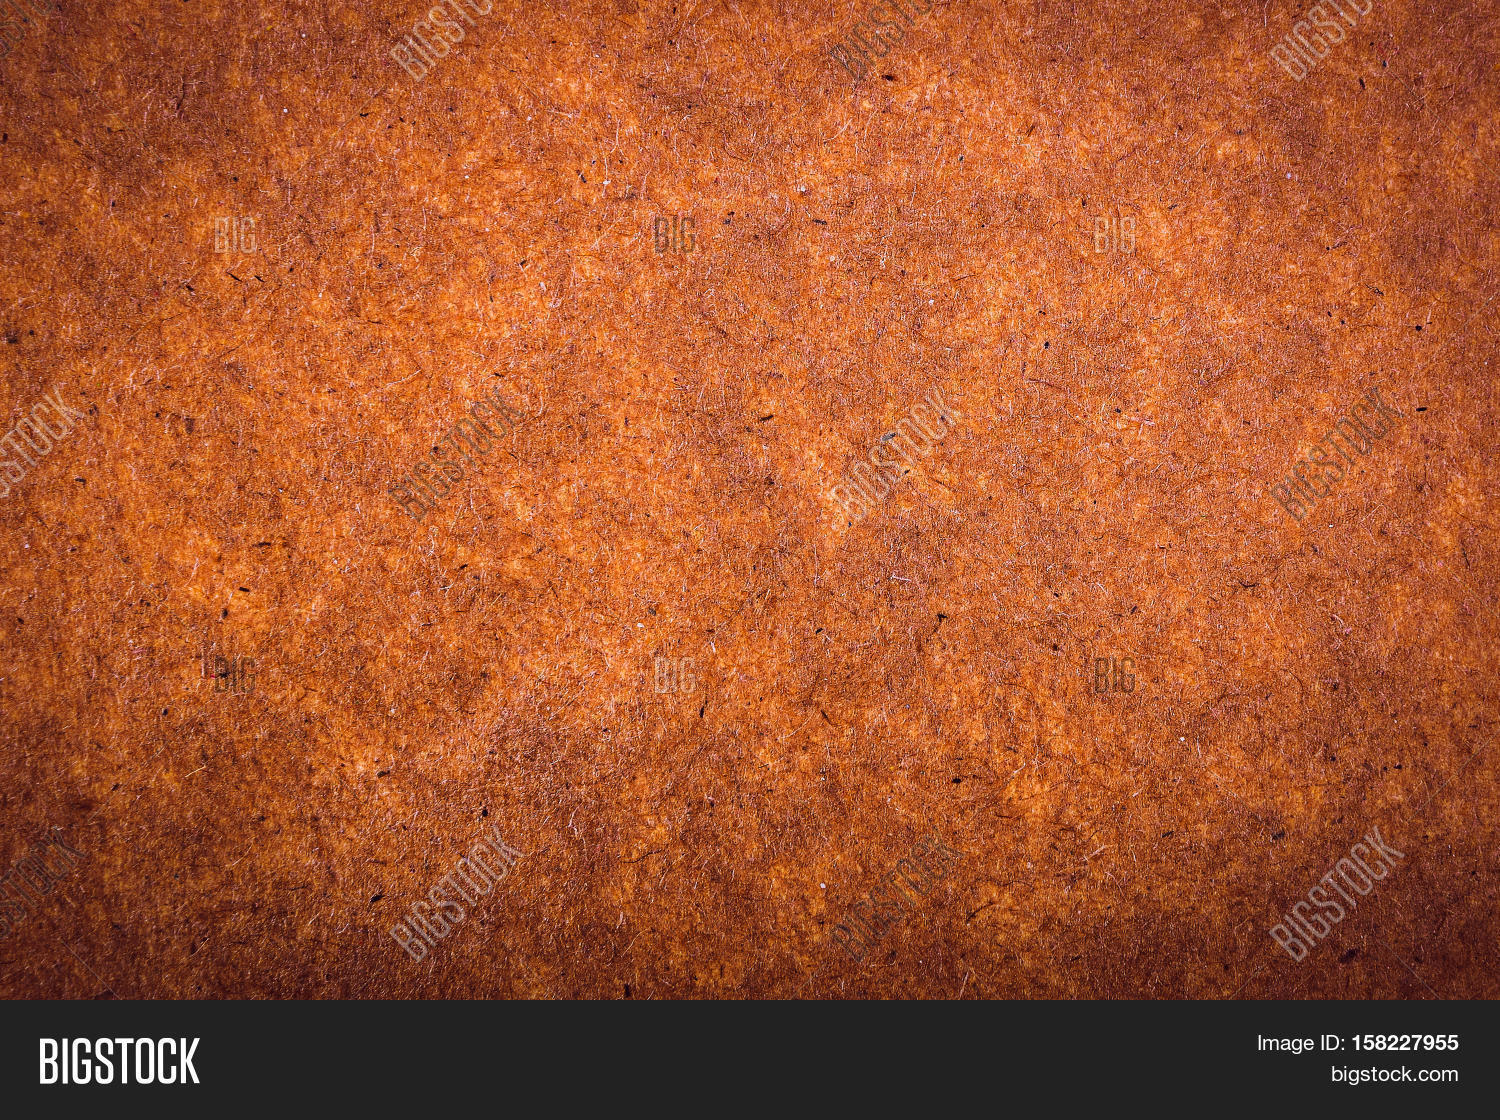 Brown Paper Texture Image & Photo (Free Trial) | Bigstock